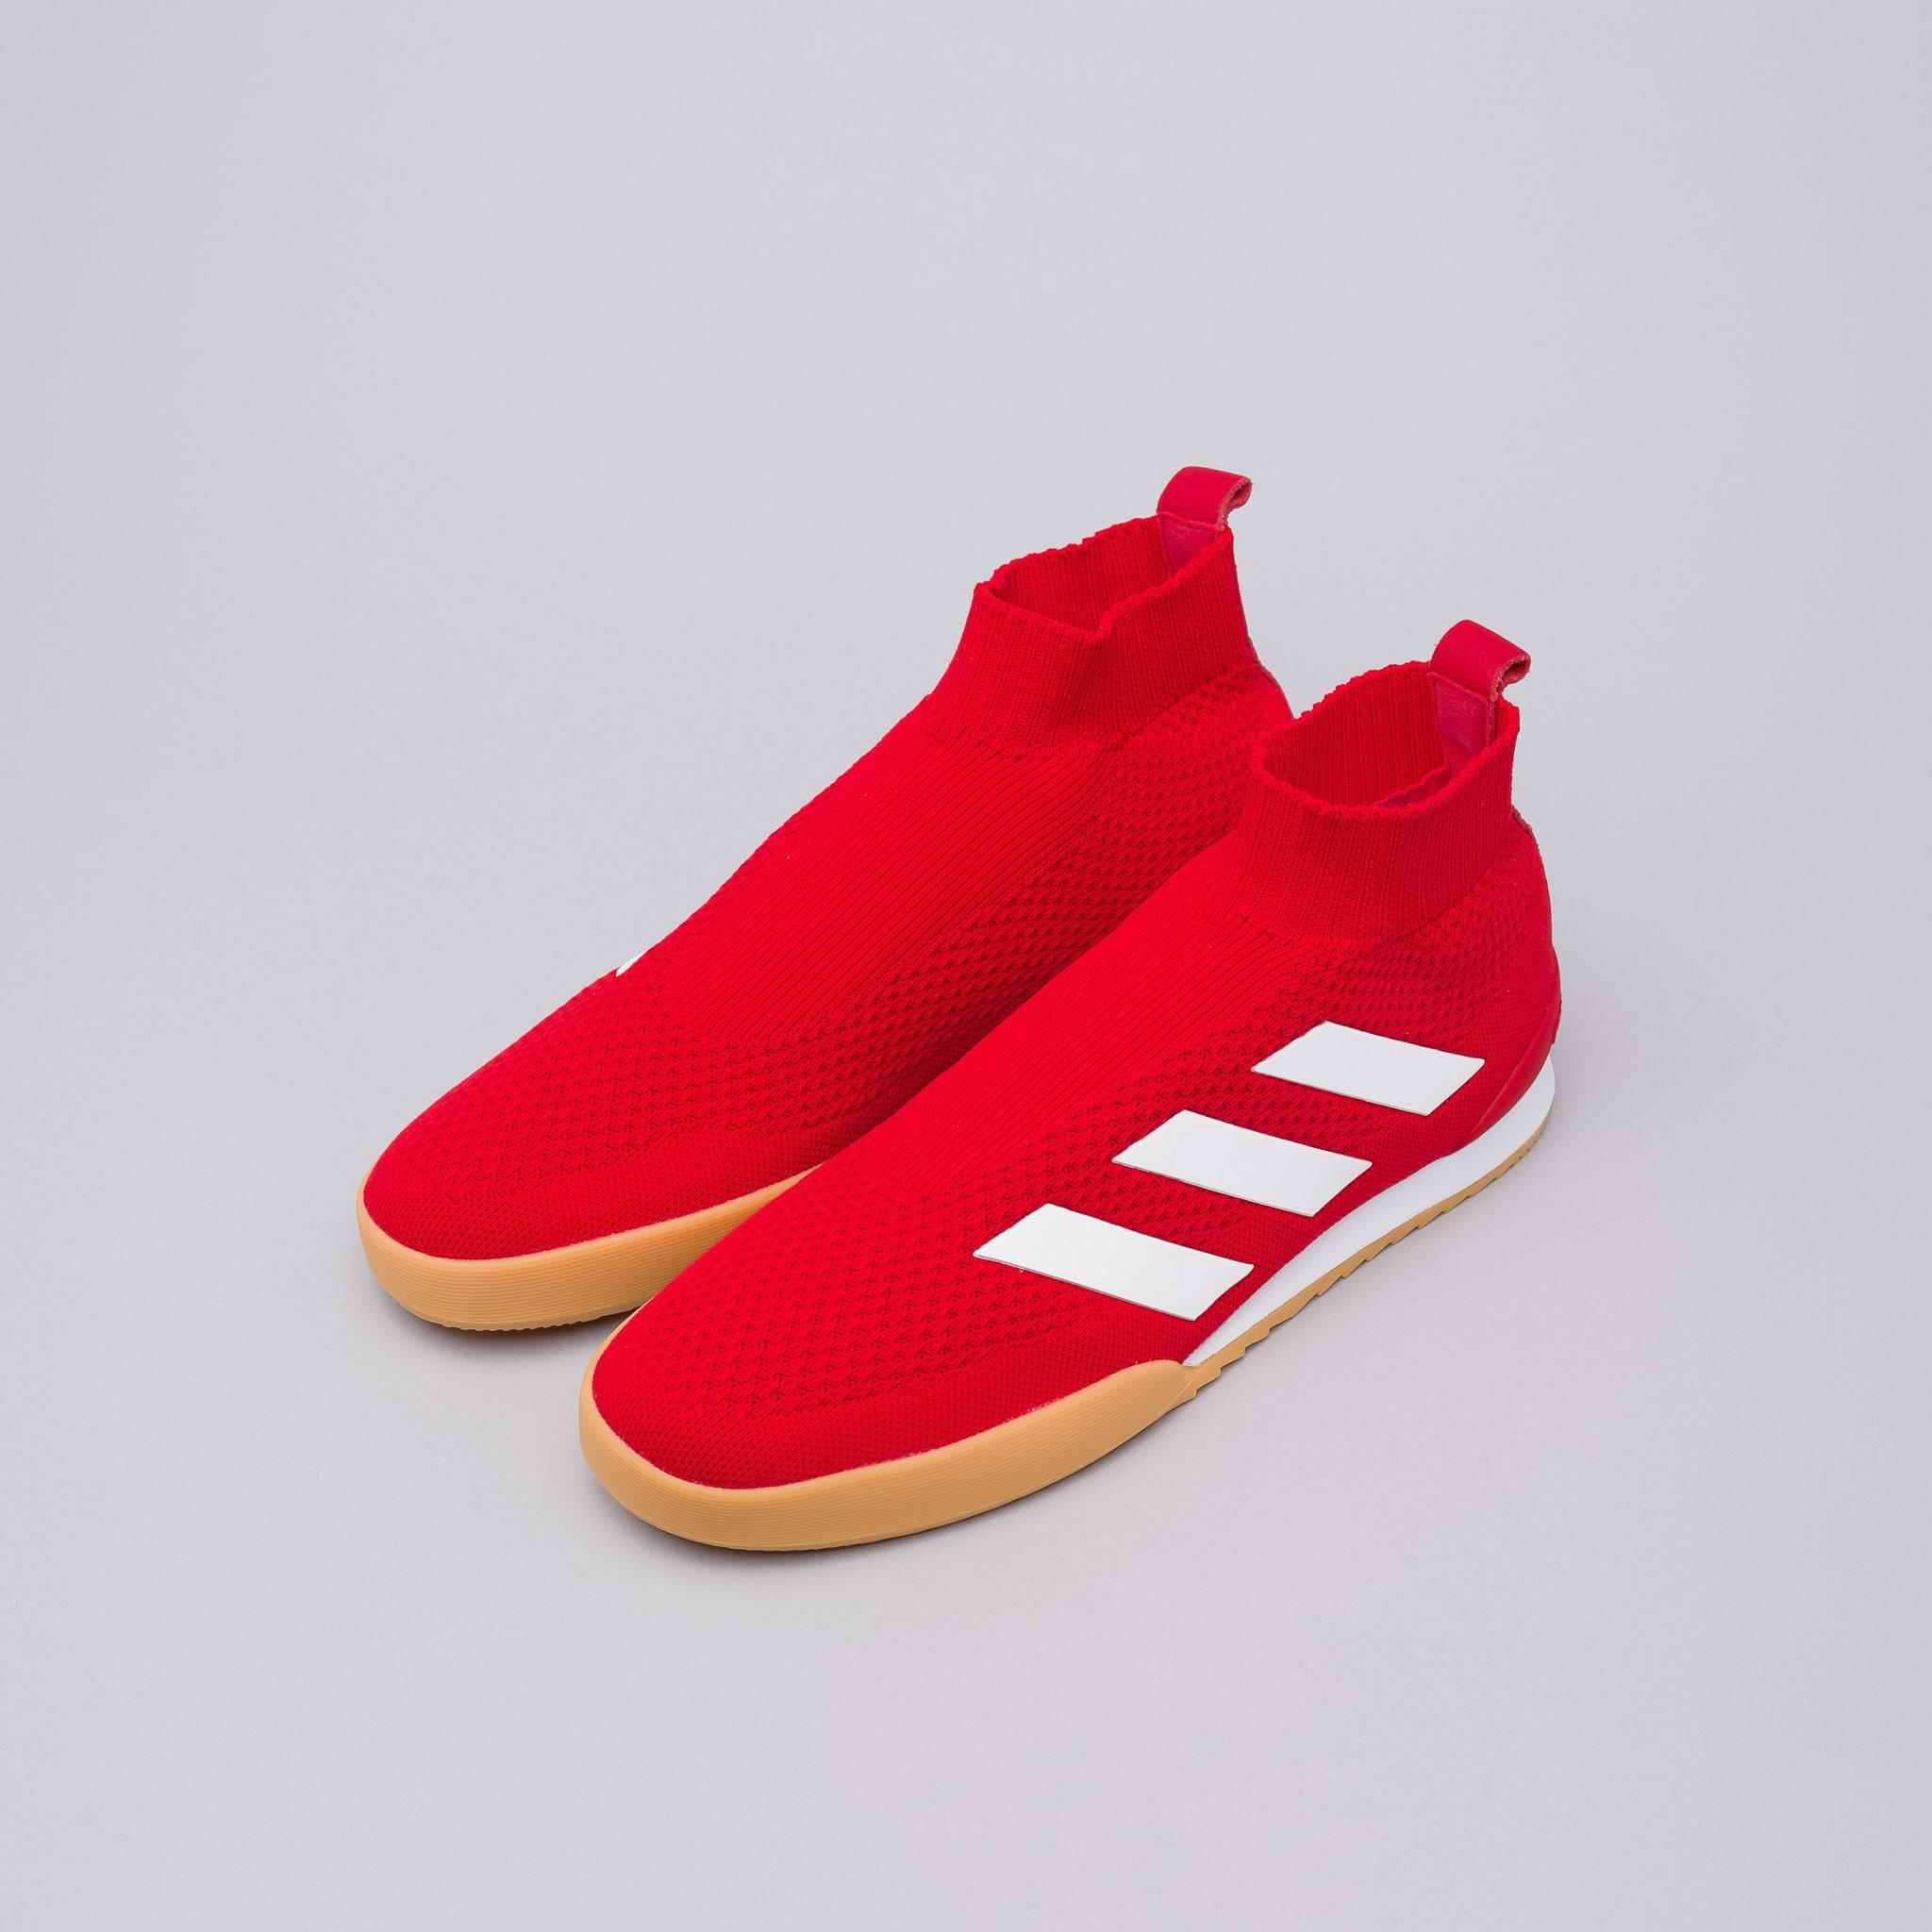 new style 02b74 a773c Lyst - Gosha Rubchinskiy X Adidas Ace Super Shoes In Red in